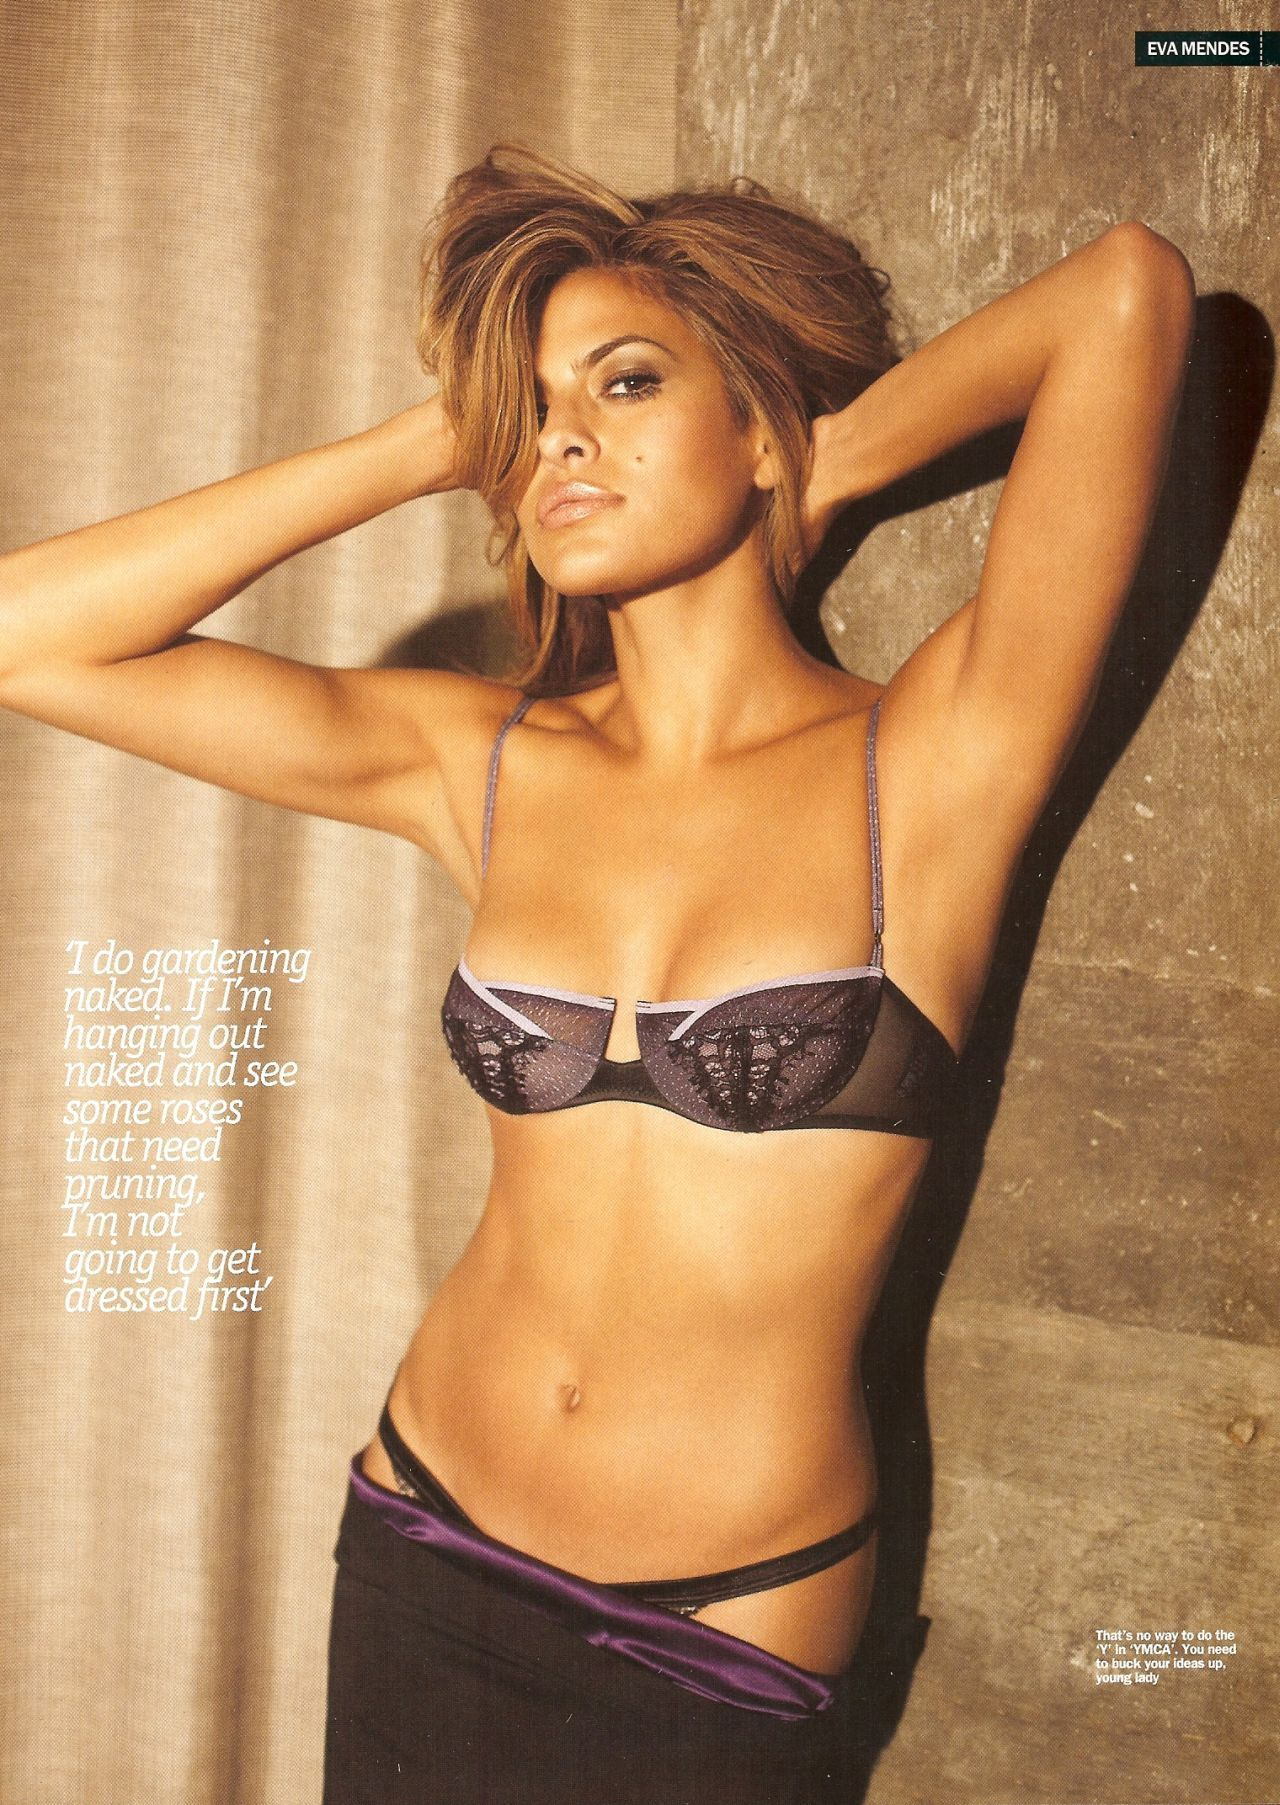 Celebrities nude pic eva mendes uncovers herself